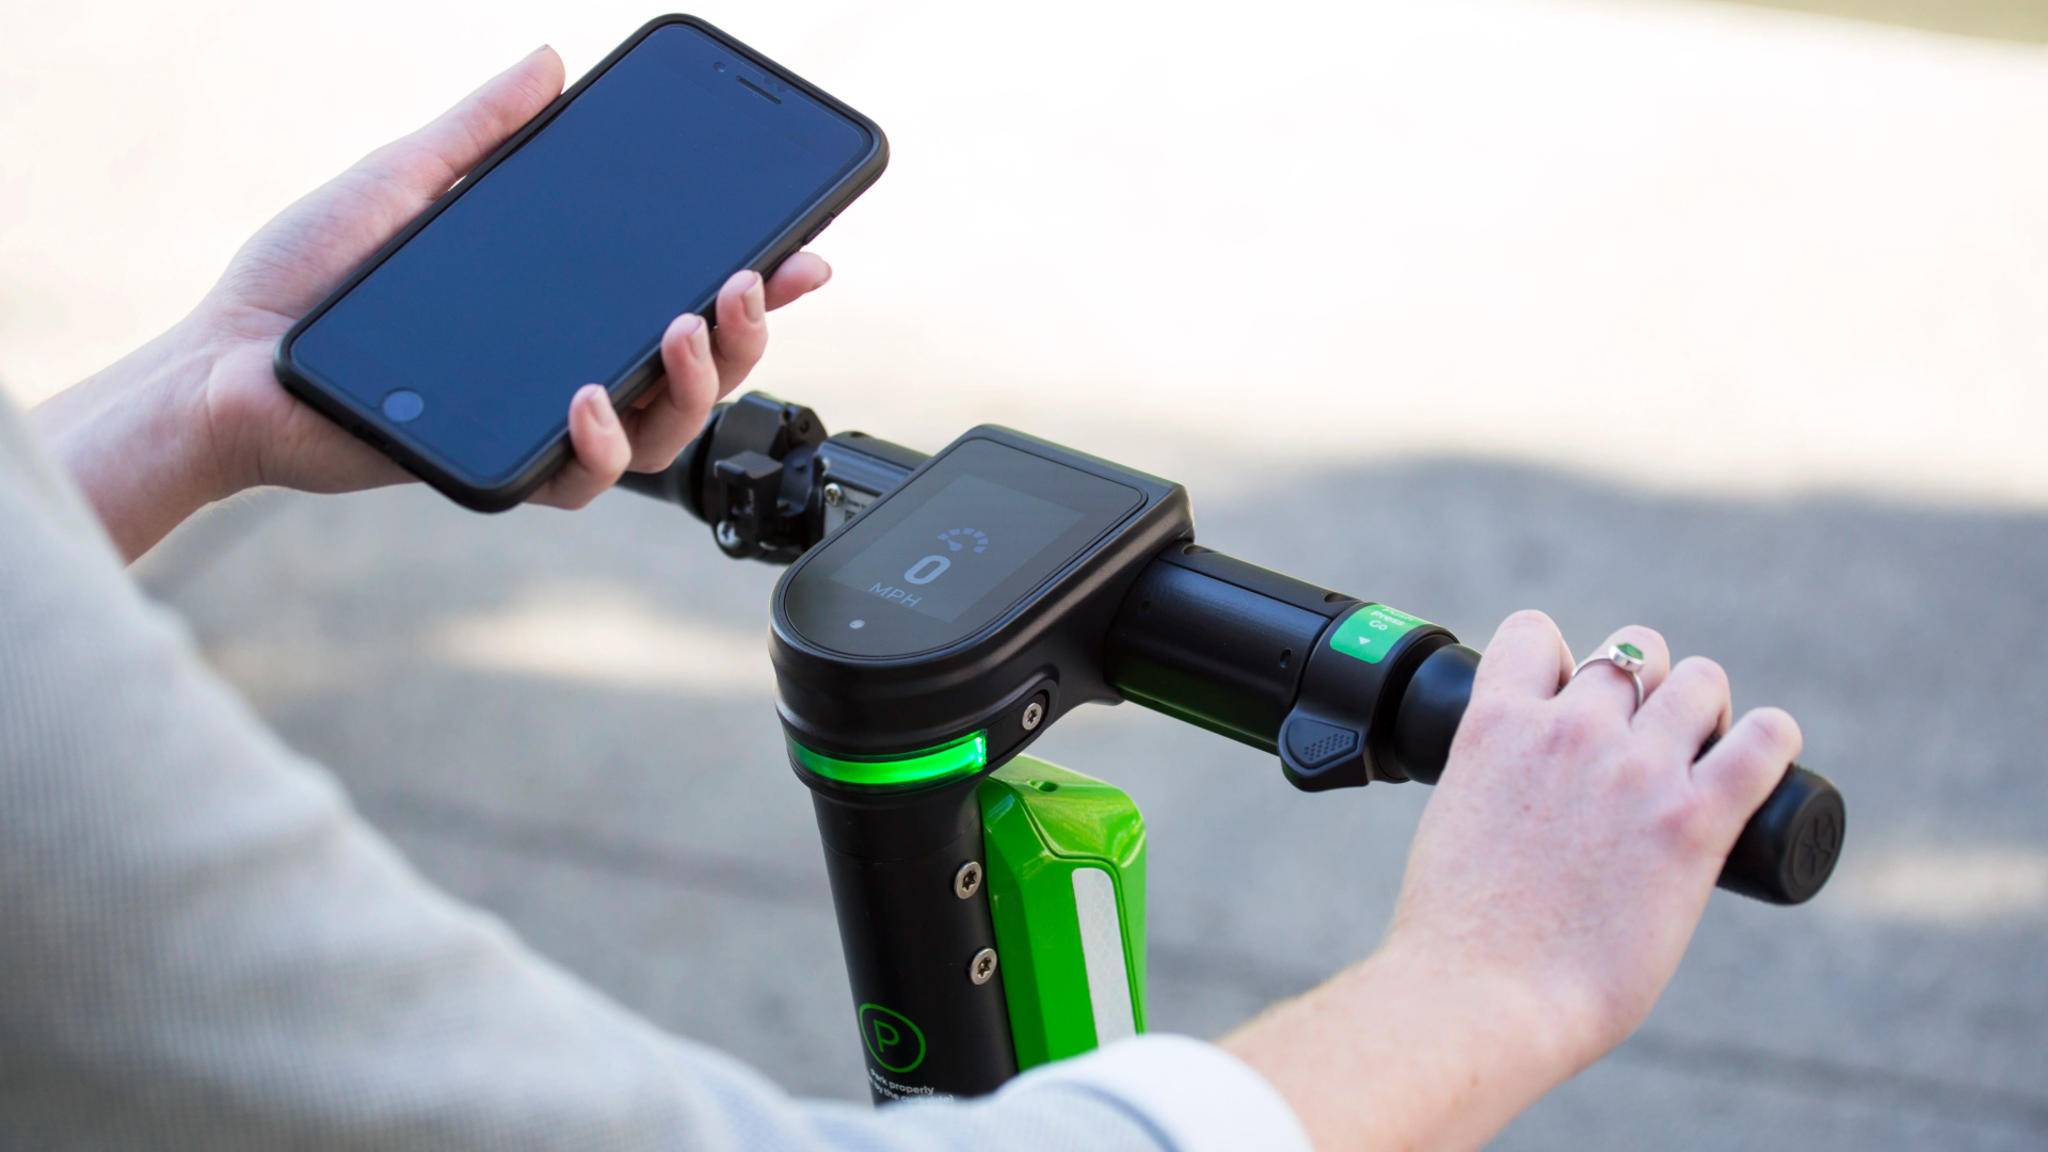 lime-e-scooter-smartphone